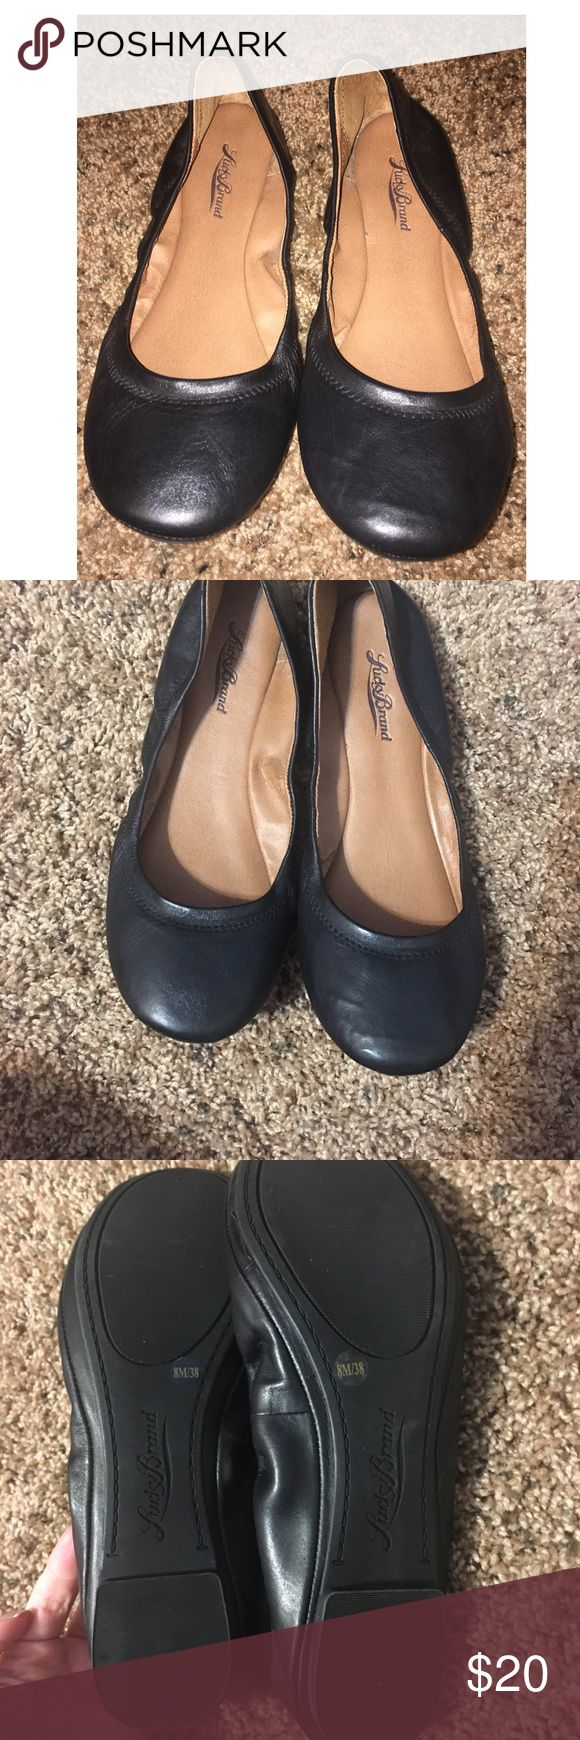 Black Lucky Brand Flats sz 8 These are in great condition! I have only worn them once for graduation. They are super comfy and lightweight! Lucky Brand Shoes Flats & Loafers